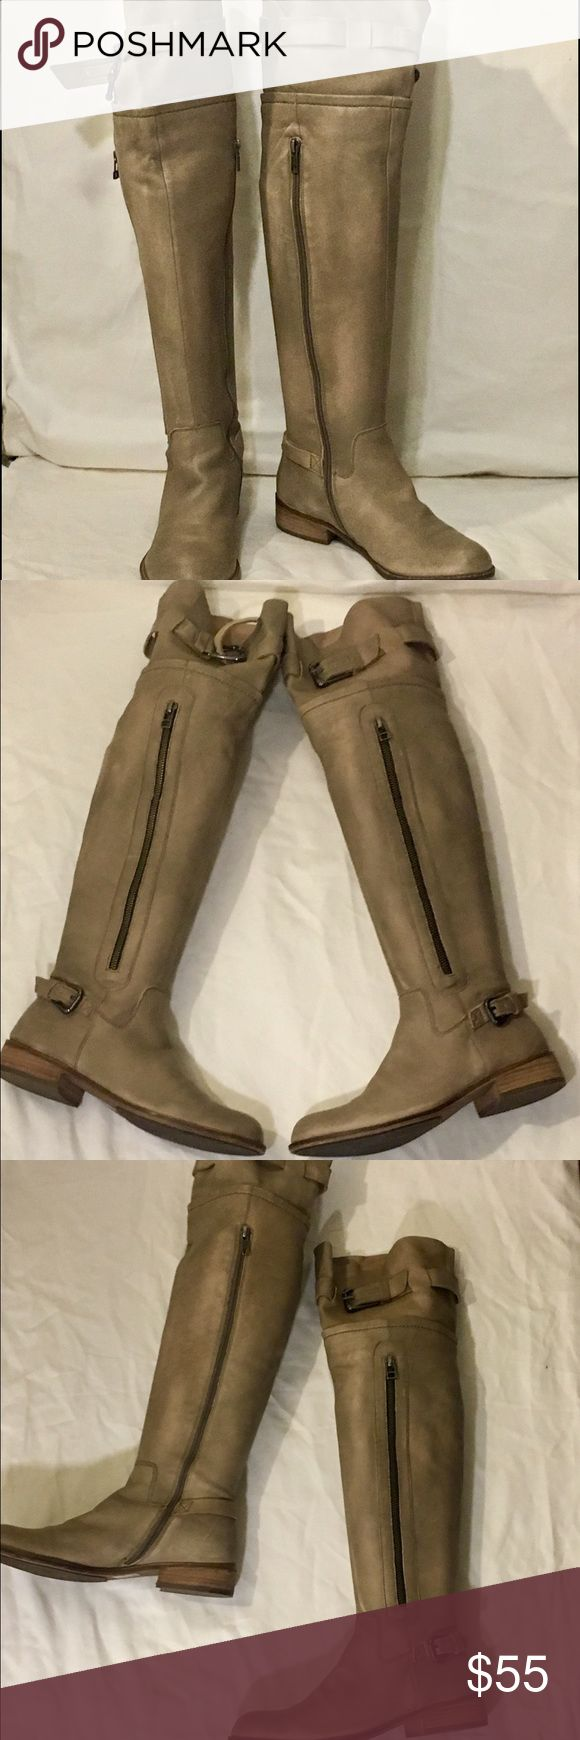 Steve Madden leather OTK boots Supple tan leather boot! Low heel for walking comfort. modern classic that's adds a little edge to any outfit! Steve Madden Shoes Over the Knee Boots